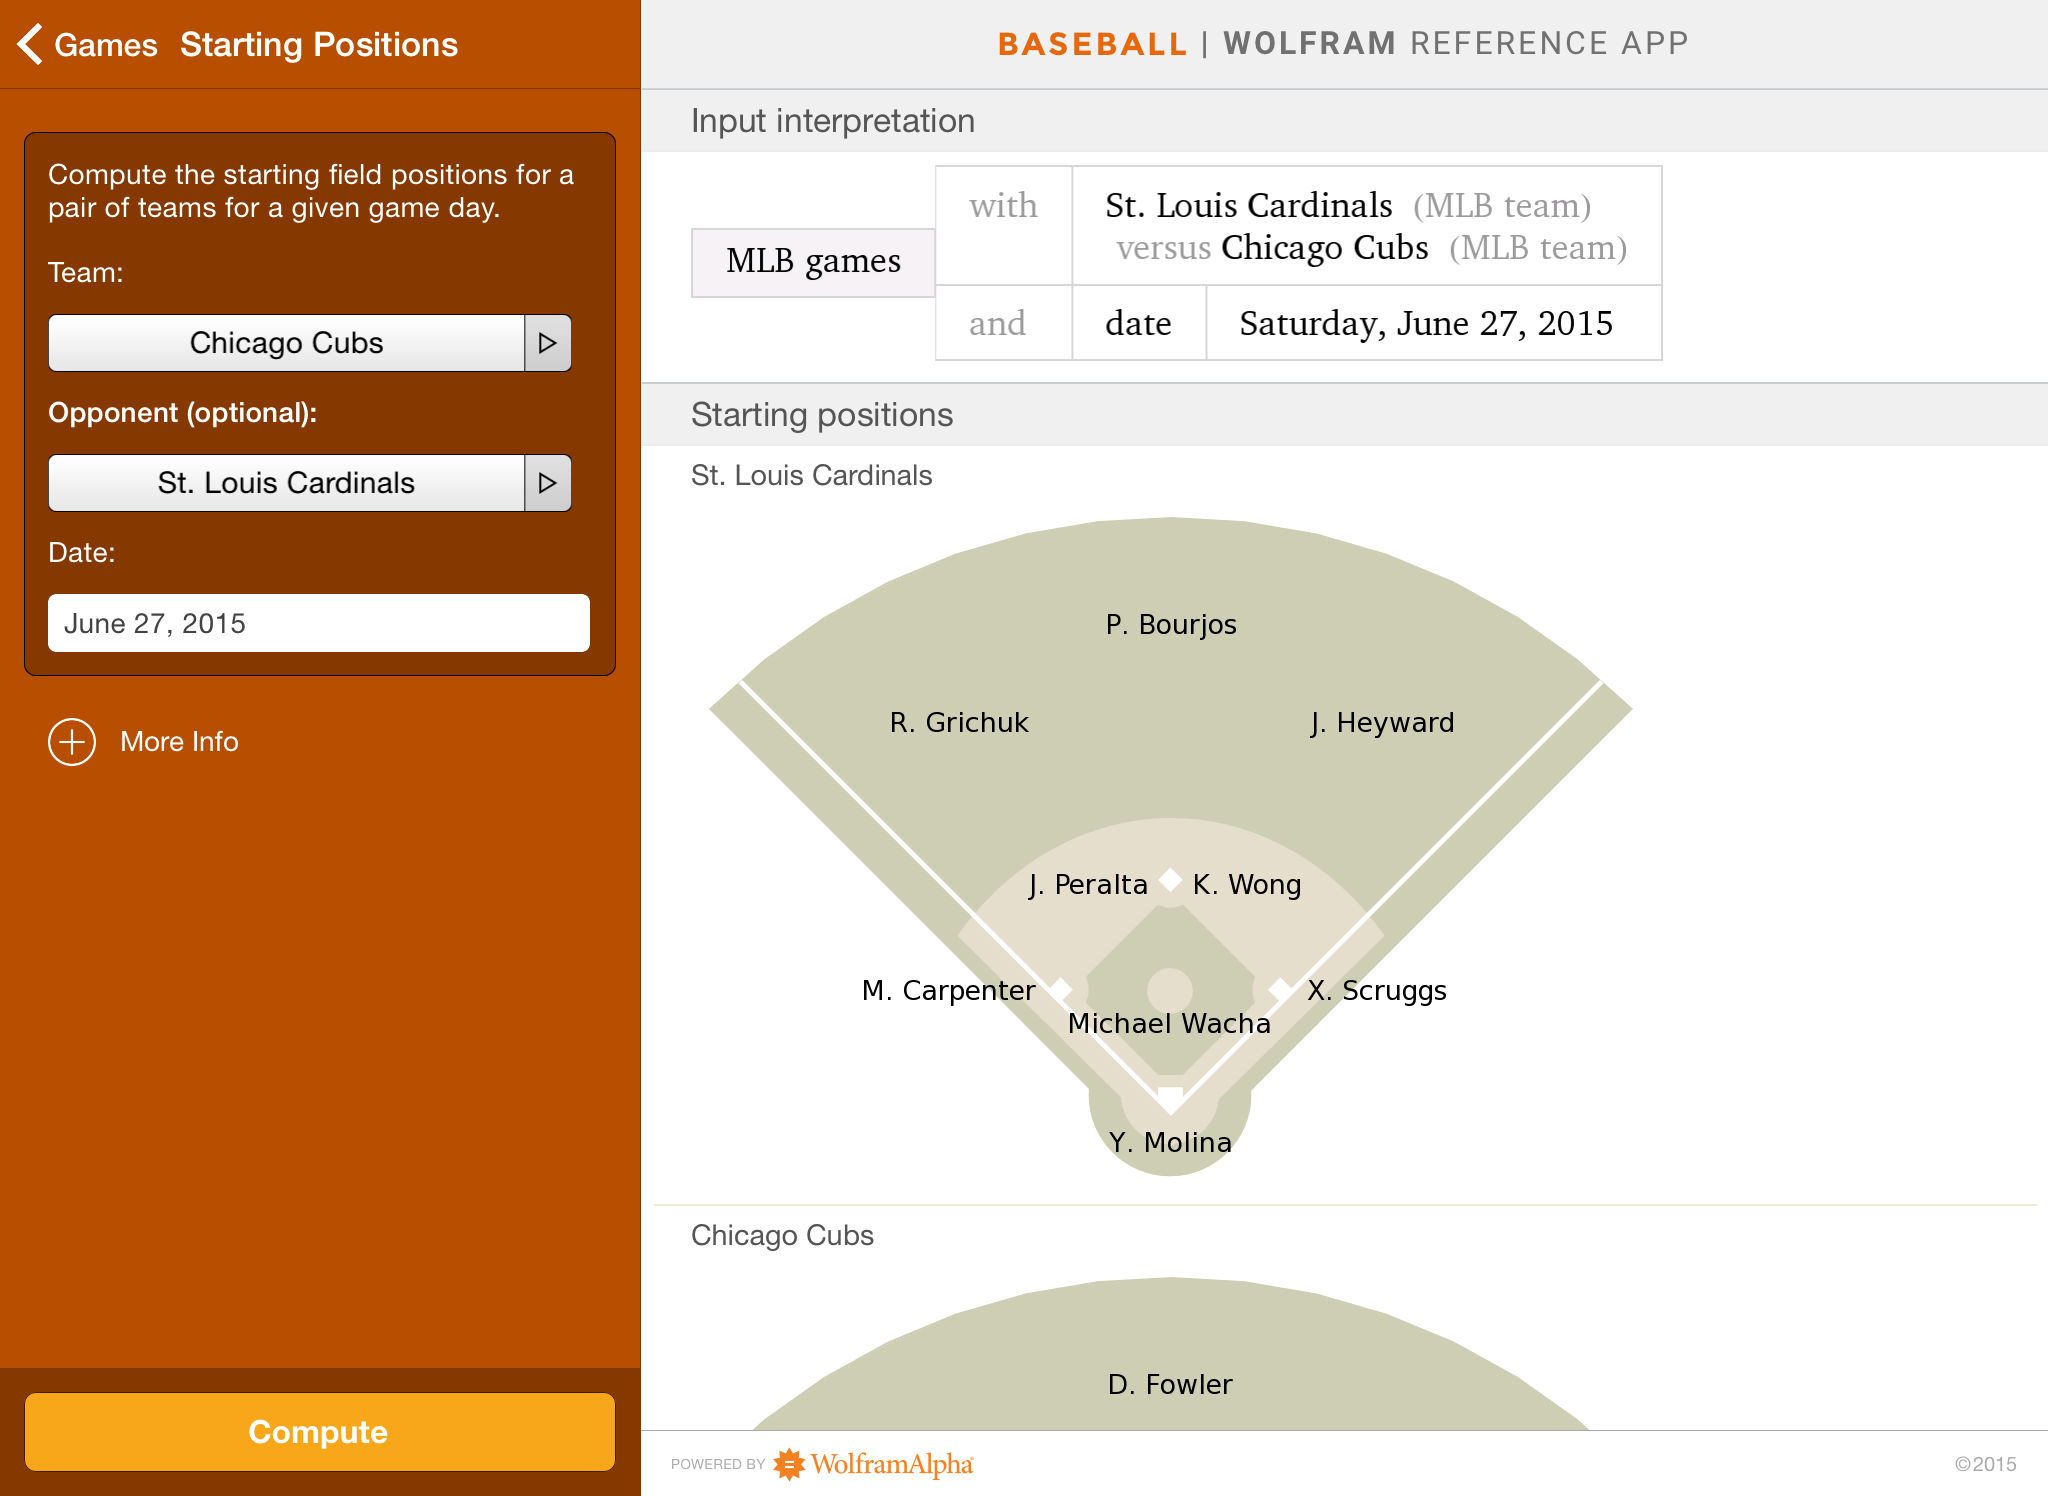 Wolfram Pro Baseball Stats Reference App App Ranking And Store Data